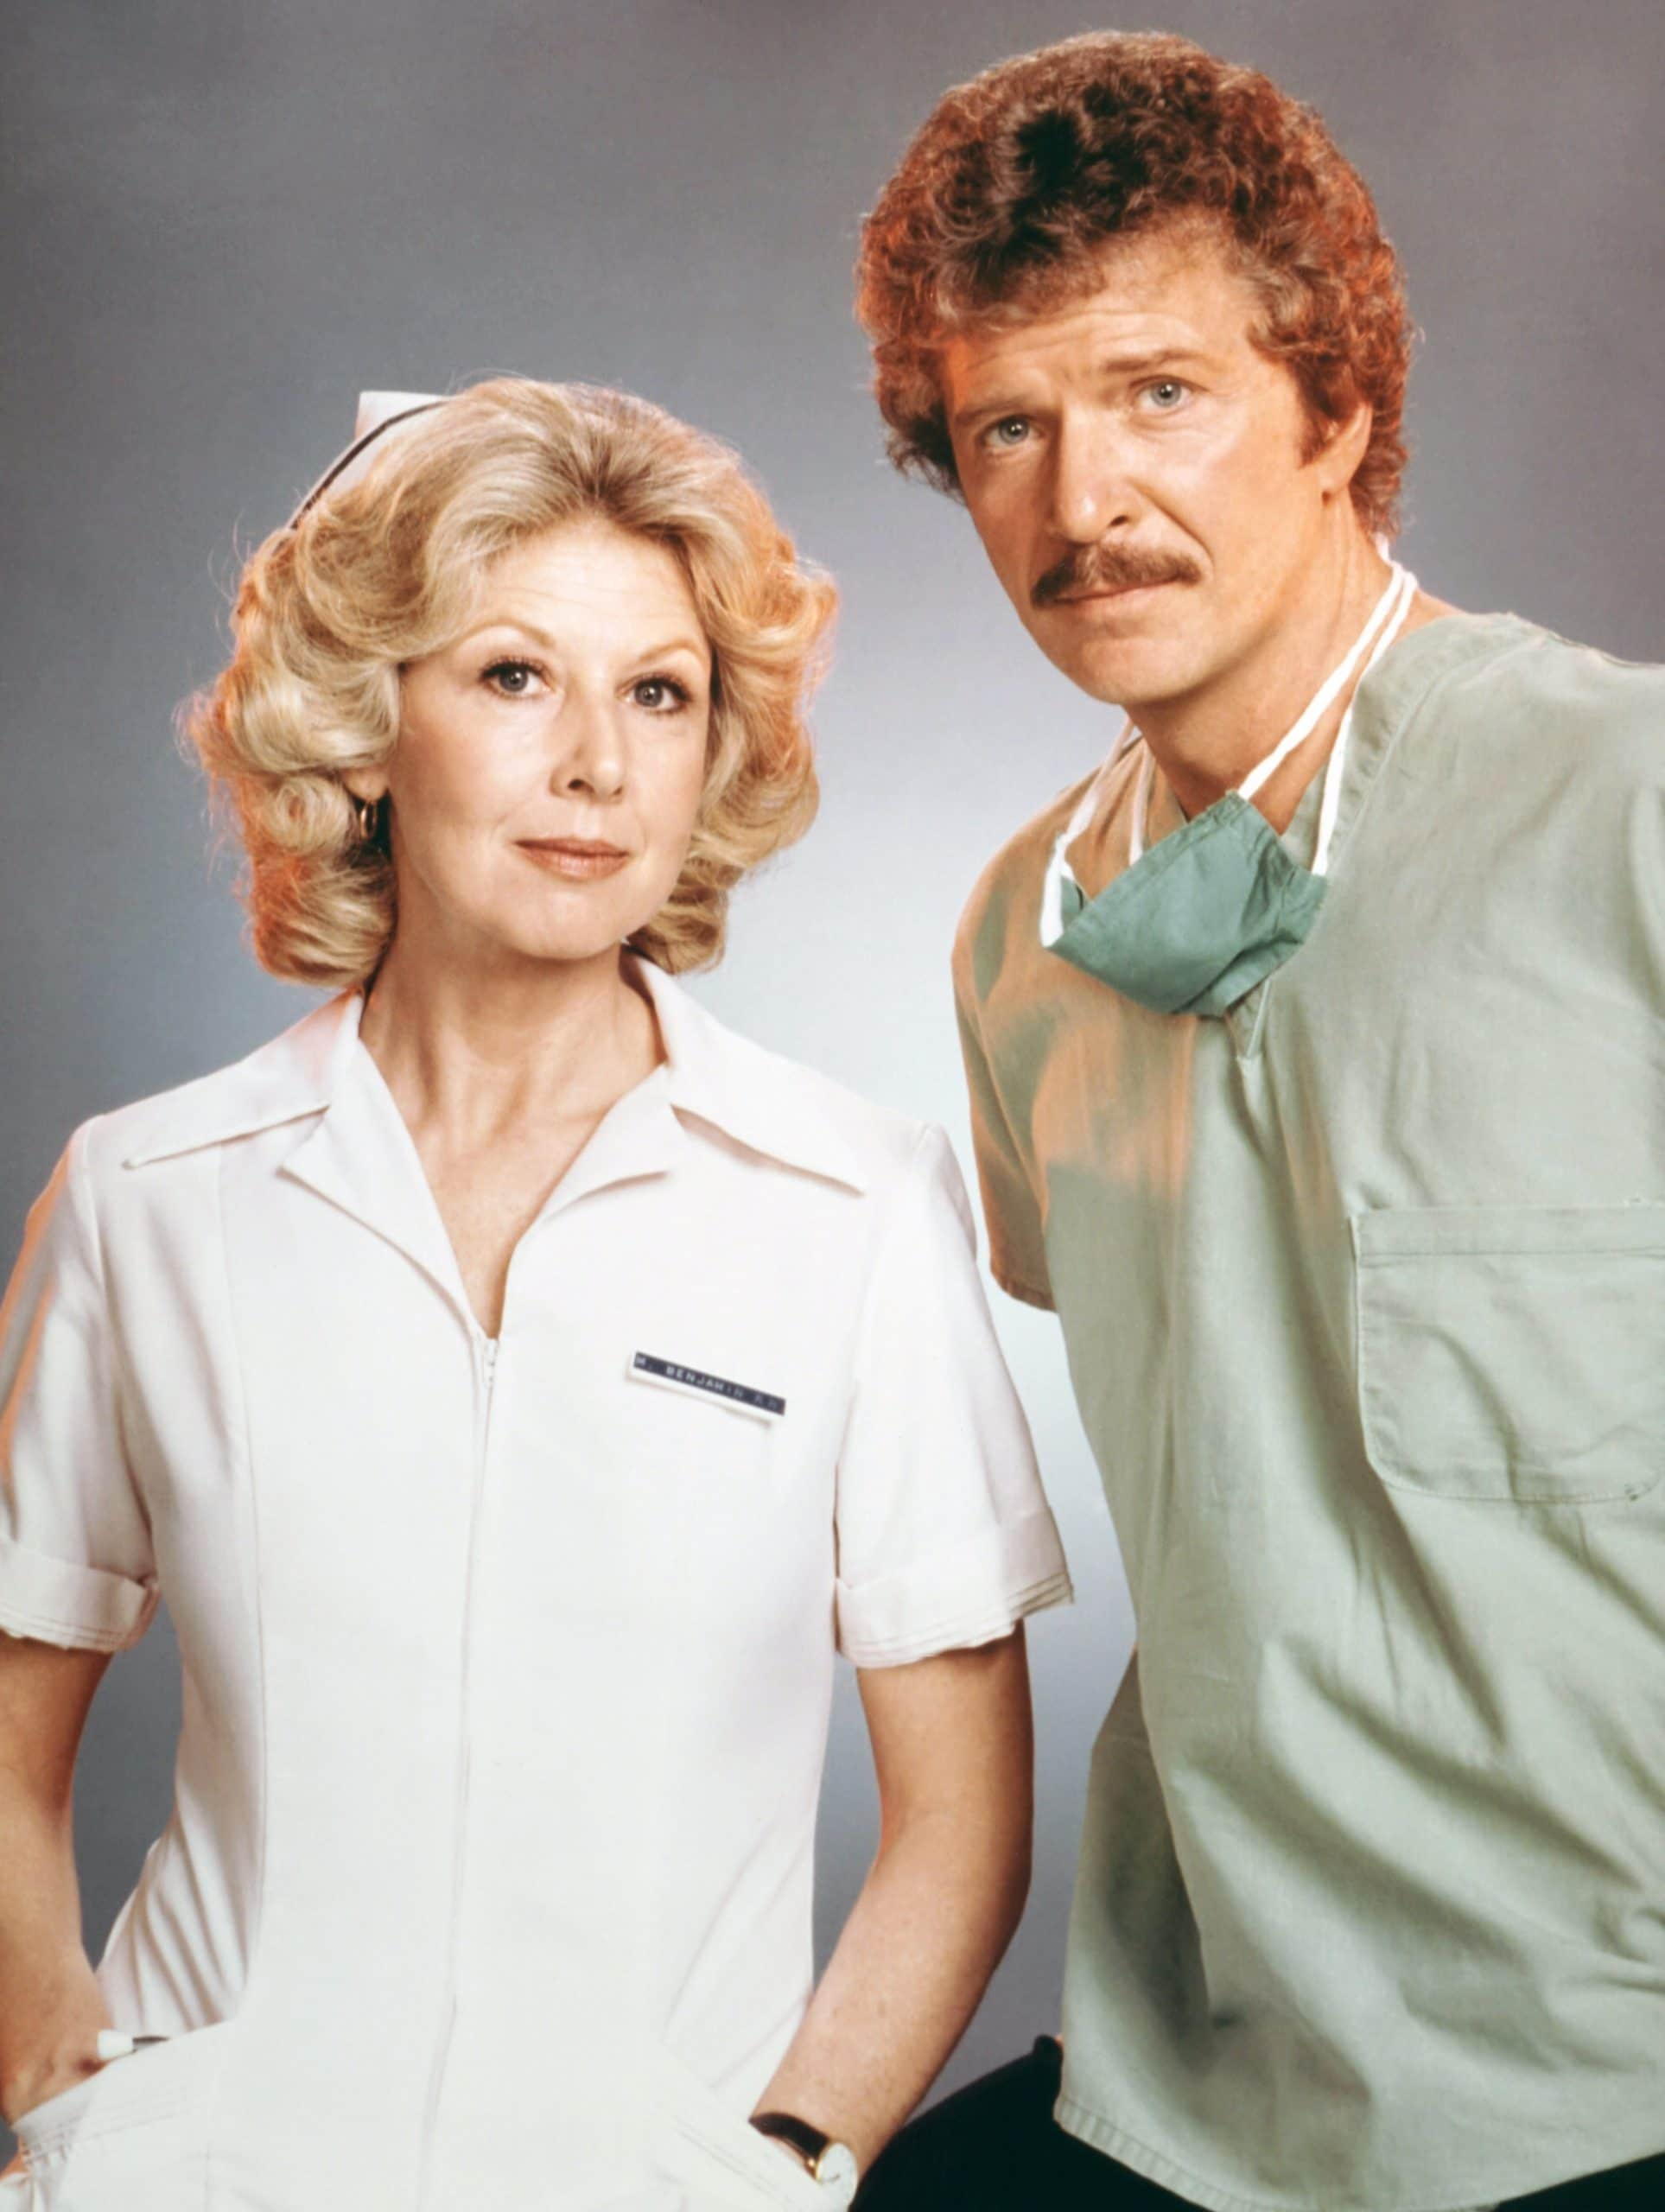 NURSE, from left: Michael Learned, Robert Reed, 1981-82